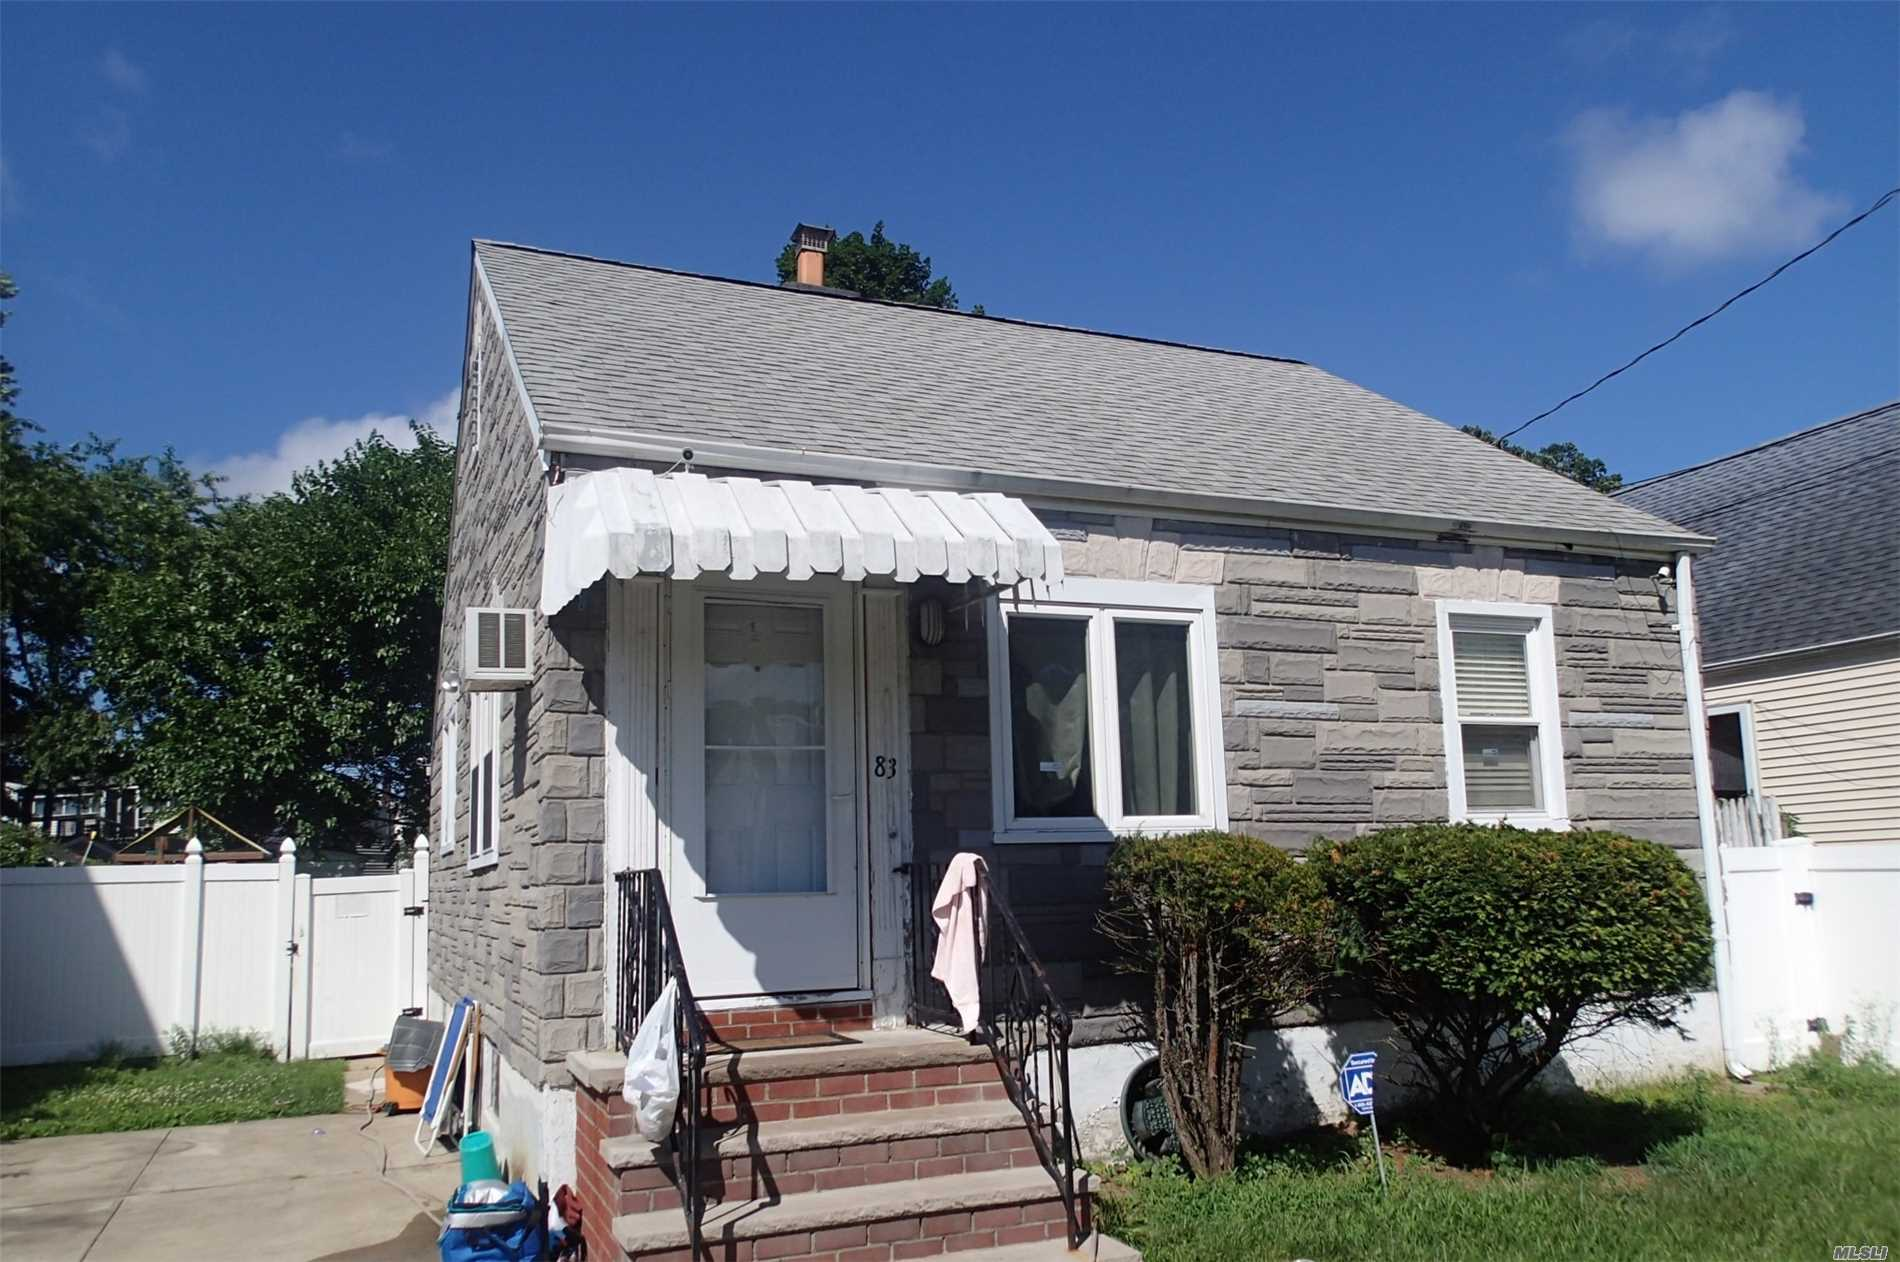 Occupied 1 Family W/ Private Driveway. Well Situated Near Many Neighborhood Necessities. Information Gathered From Public Records. Information Is Considered From Reliable Sources And Cannot Be Verified. Auction Will Begin 8/27/2018 And End 8/29/2018.